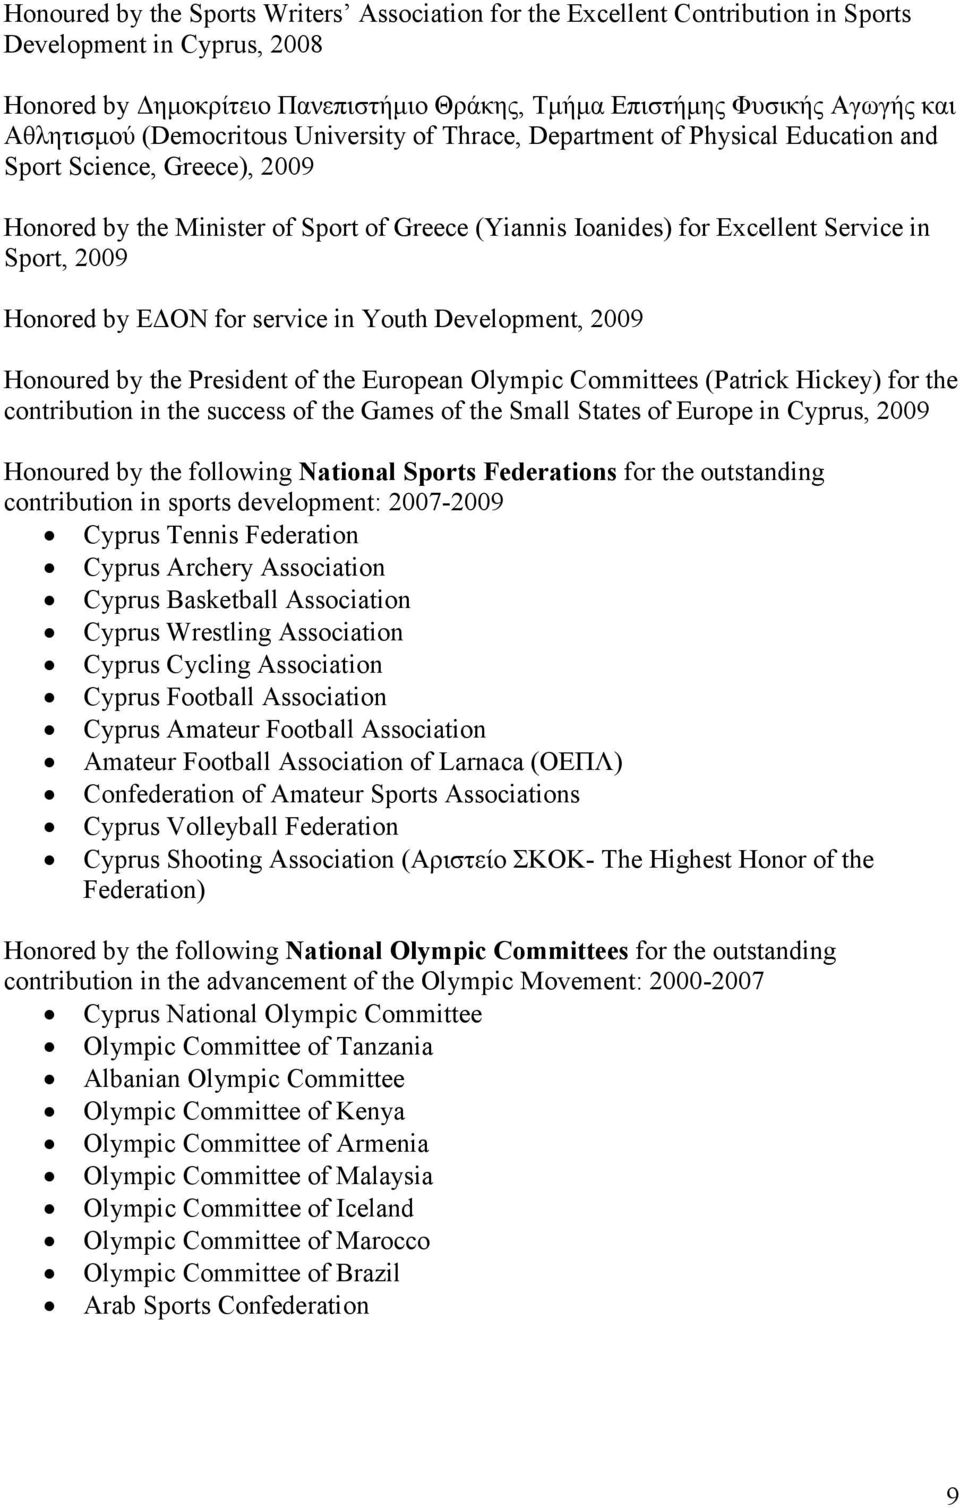 Sport, 2009 Honored by ΕΔΟΝ for service in Youth Development, 2009 Honoured by the President of the European Olympic Committees (Patrick Hickey) for the contribution in the success of the Games of